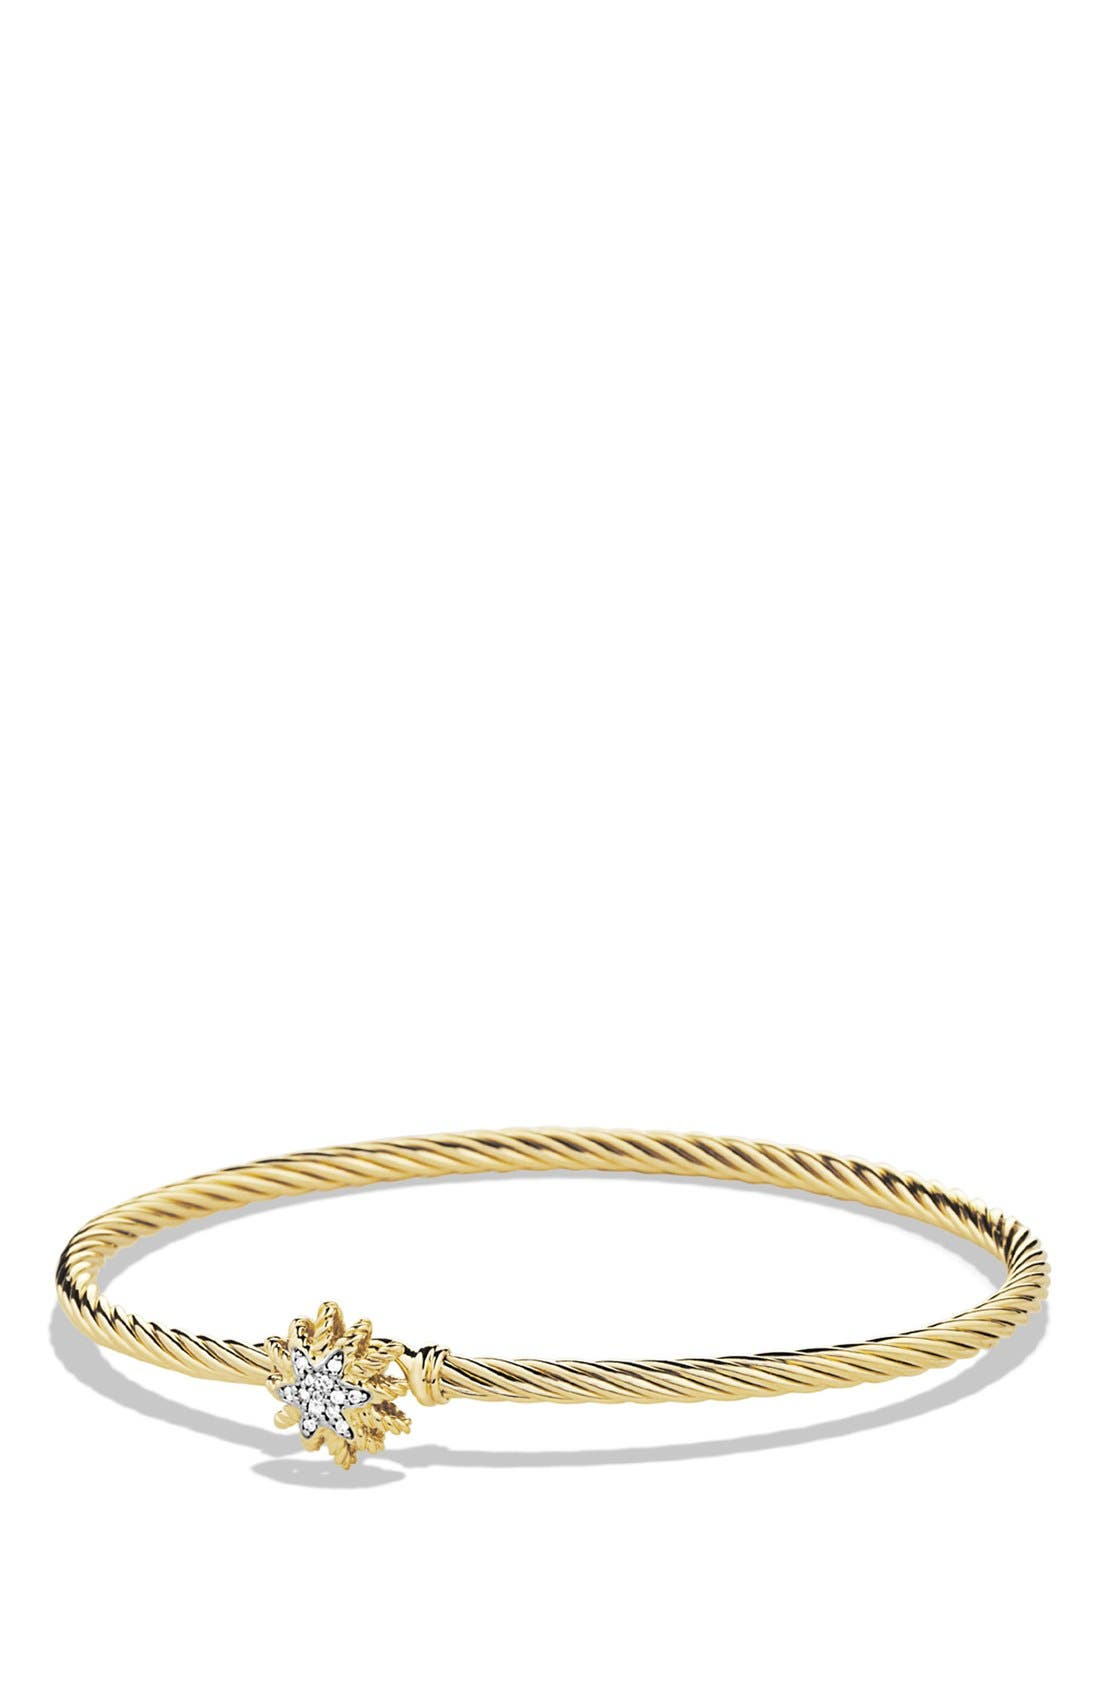 Alternate Image 1 Selected - David Yurman 'Starburst' Single-Station Cable Bracelet with Diamonds in Gold